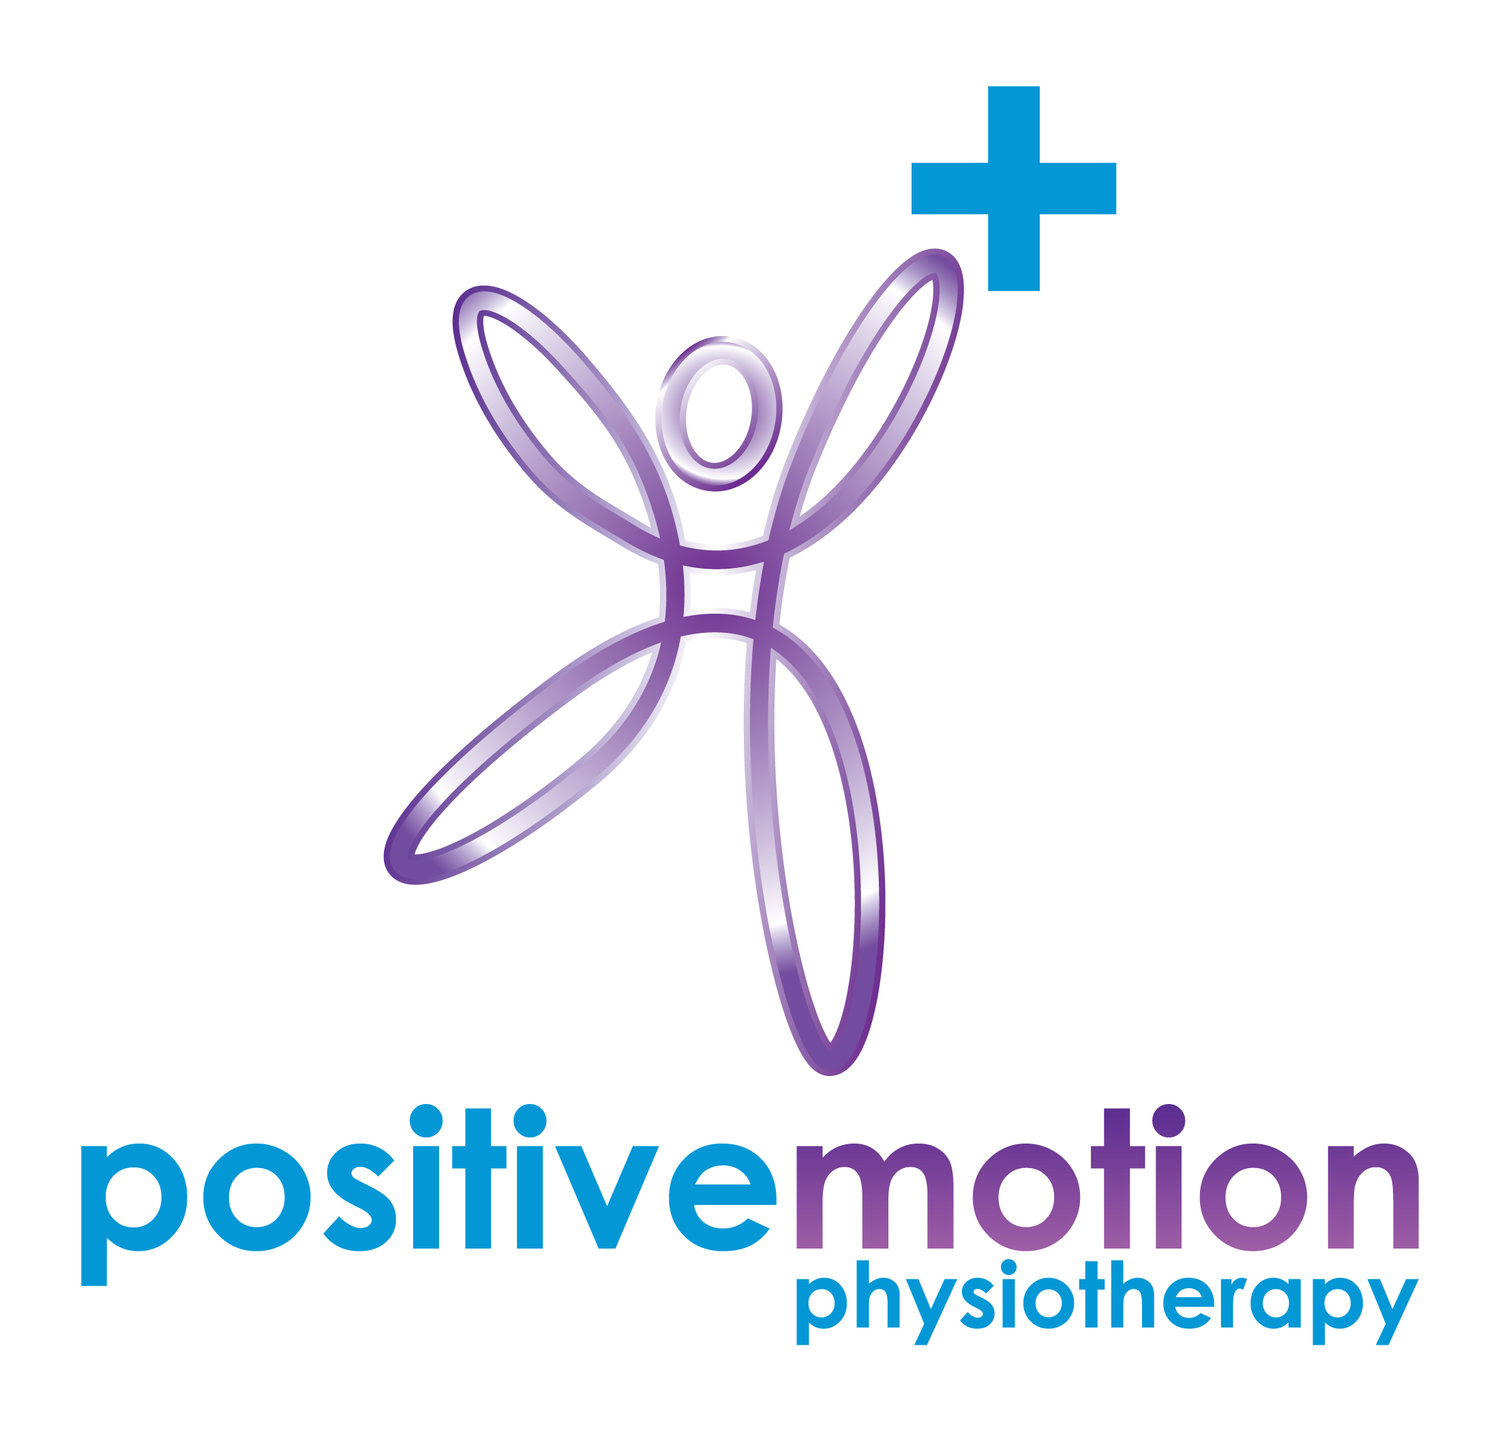 Positive Motion Physiotherapy